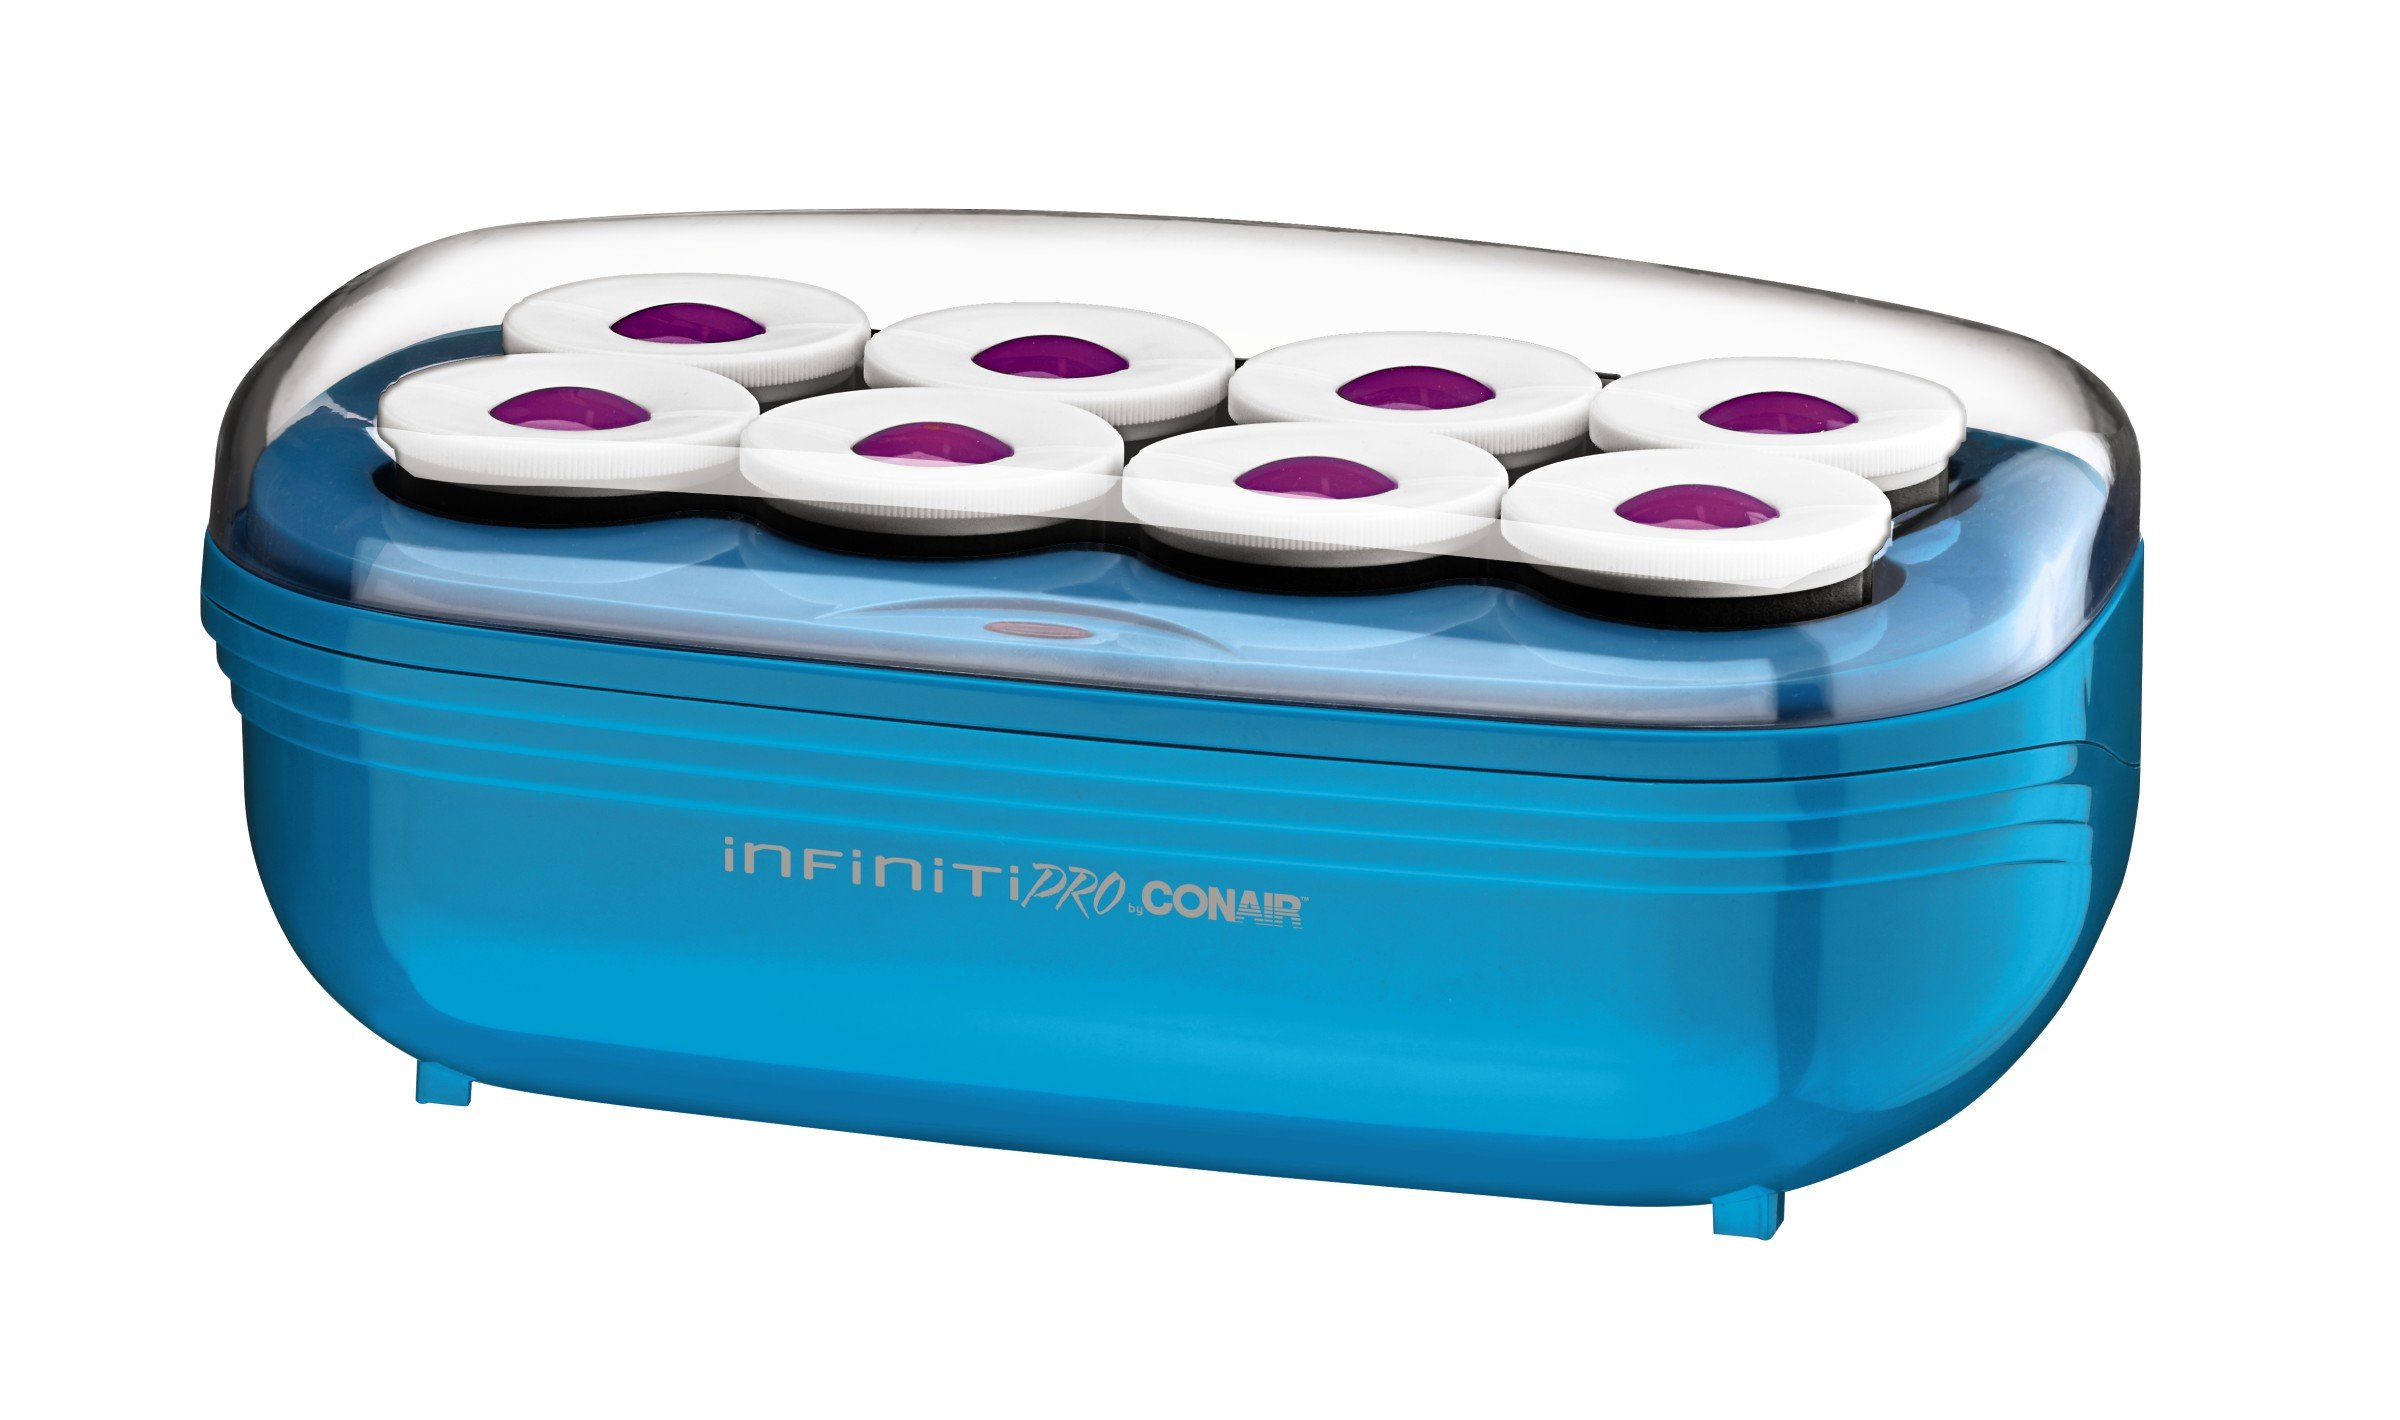 INFINITIPRO BY CONAIR Instant Heat Toumaline Ceramic Flocked Hot Rollers; 2-inch for Mega Volume and Smooth Waves